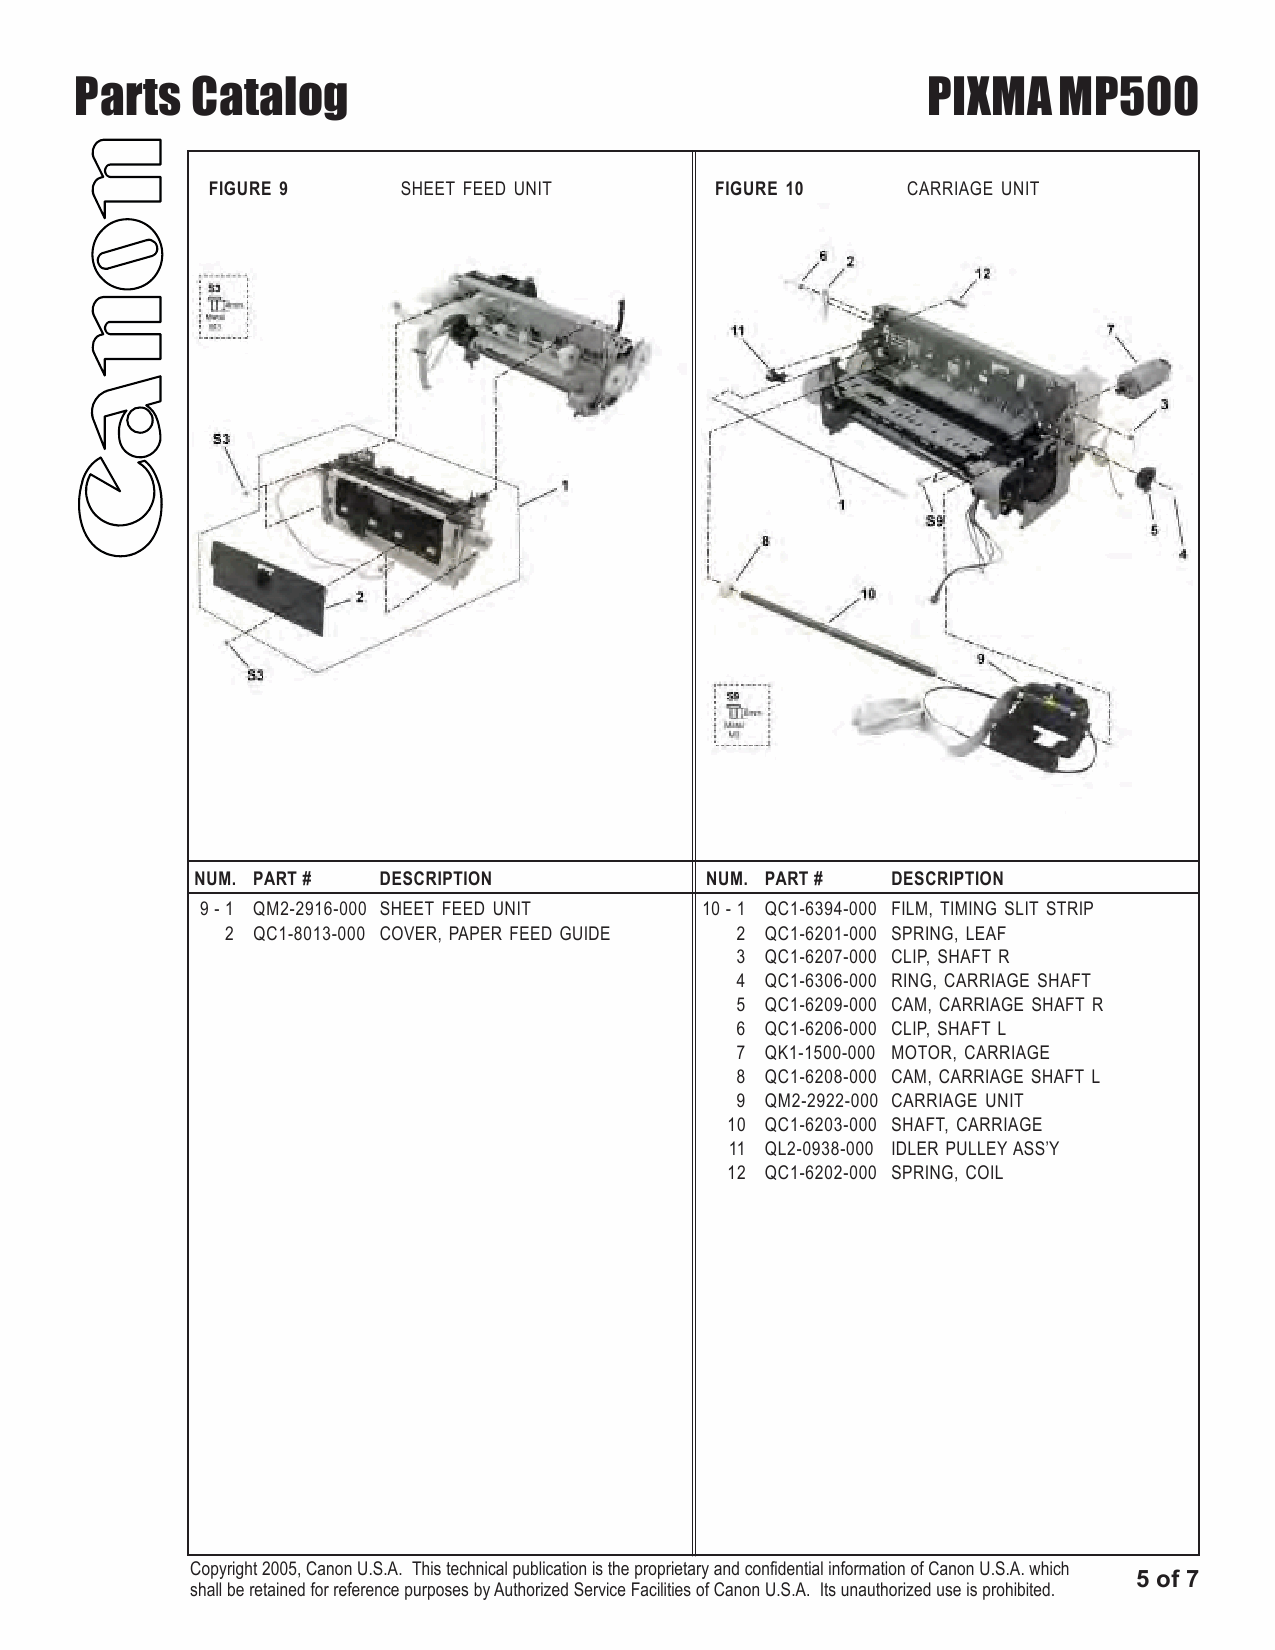 Canon PIXMA MP500 Parts Catalog Manual-6